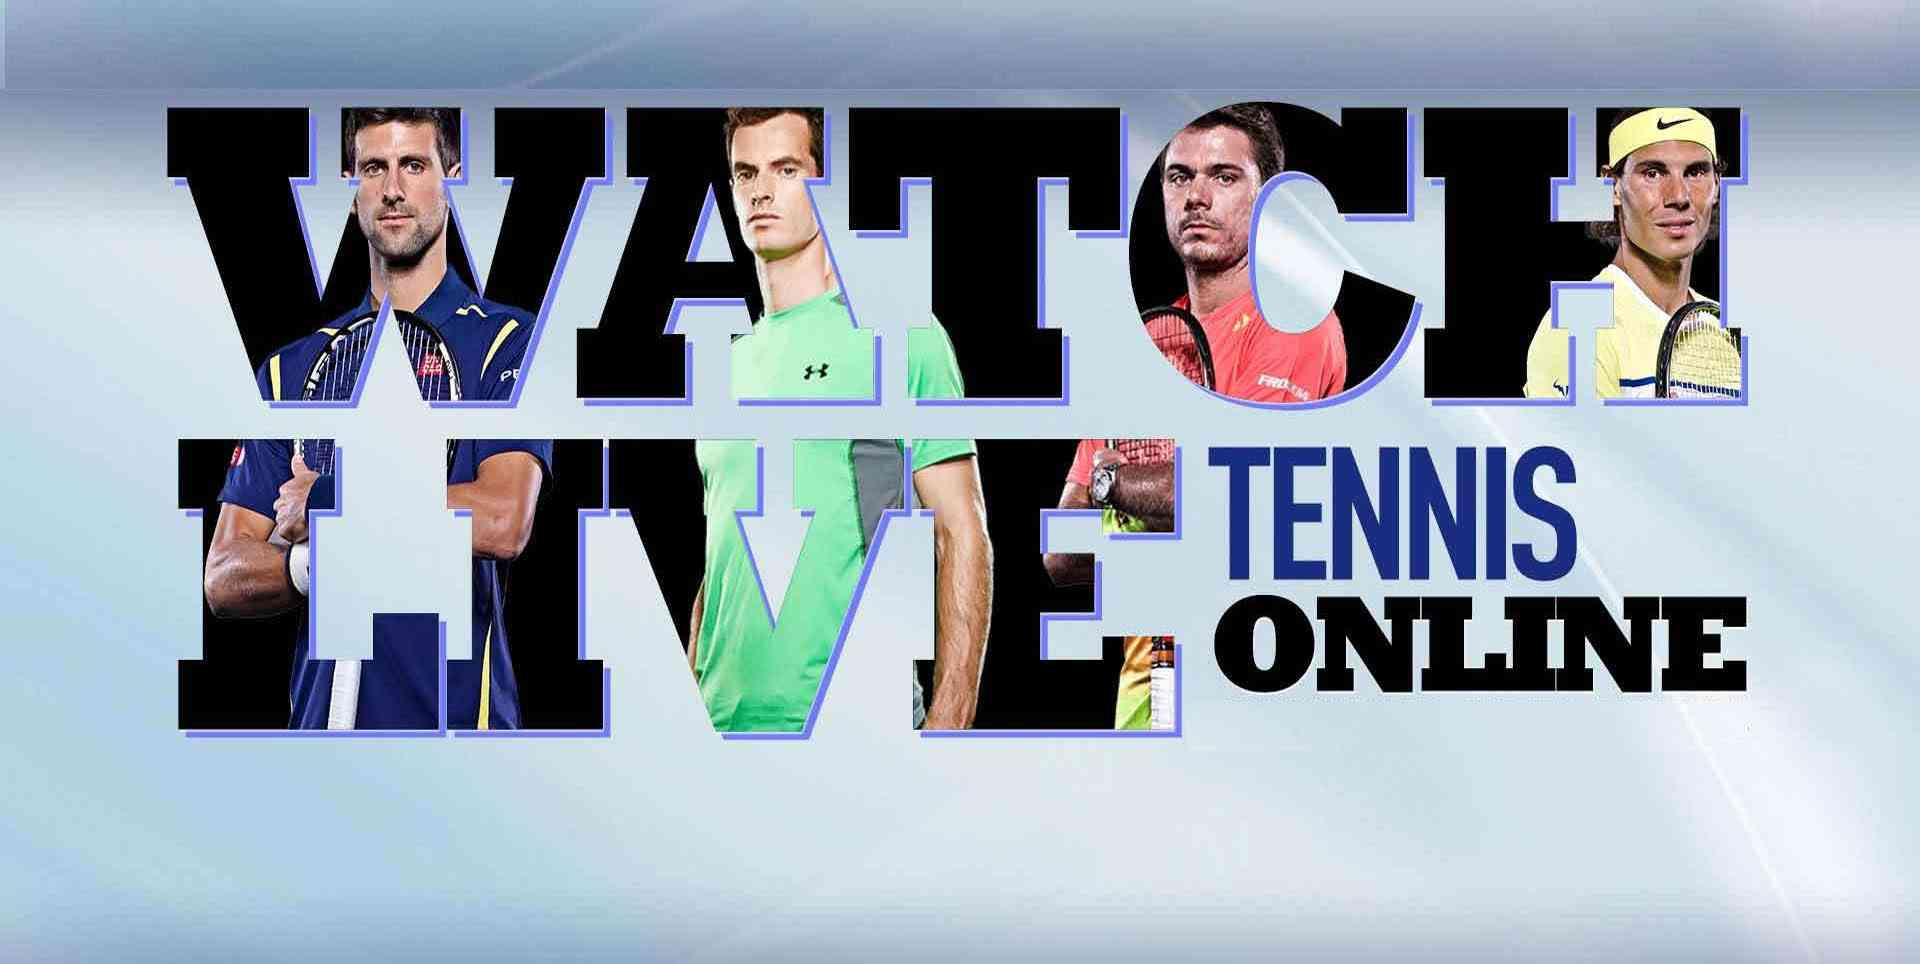 Watch Final 2014 R. Nadal vs N. Djokovic Online